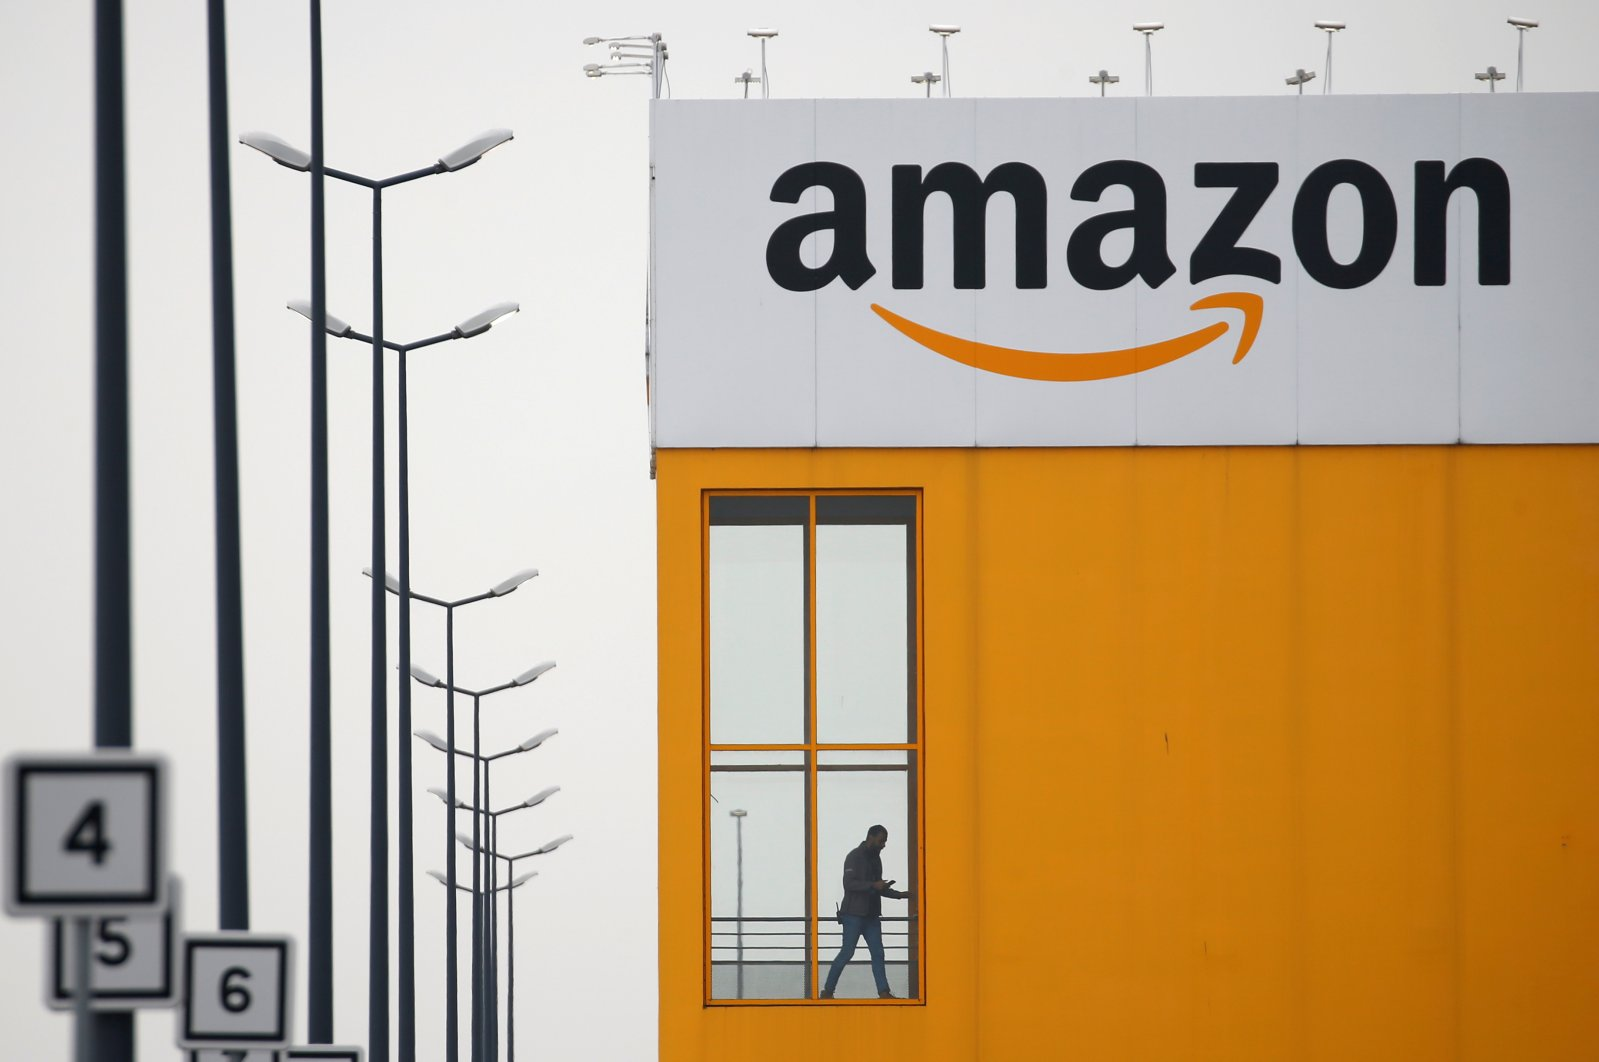 The logo of Amazon is seen at the company logistics center in Lauwin-Planque, northern France, Thursday, March 19, 2020. (Reuters Photo)